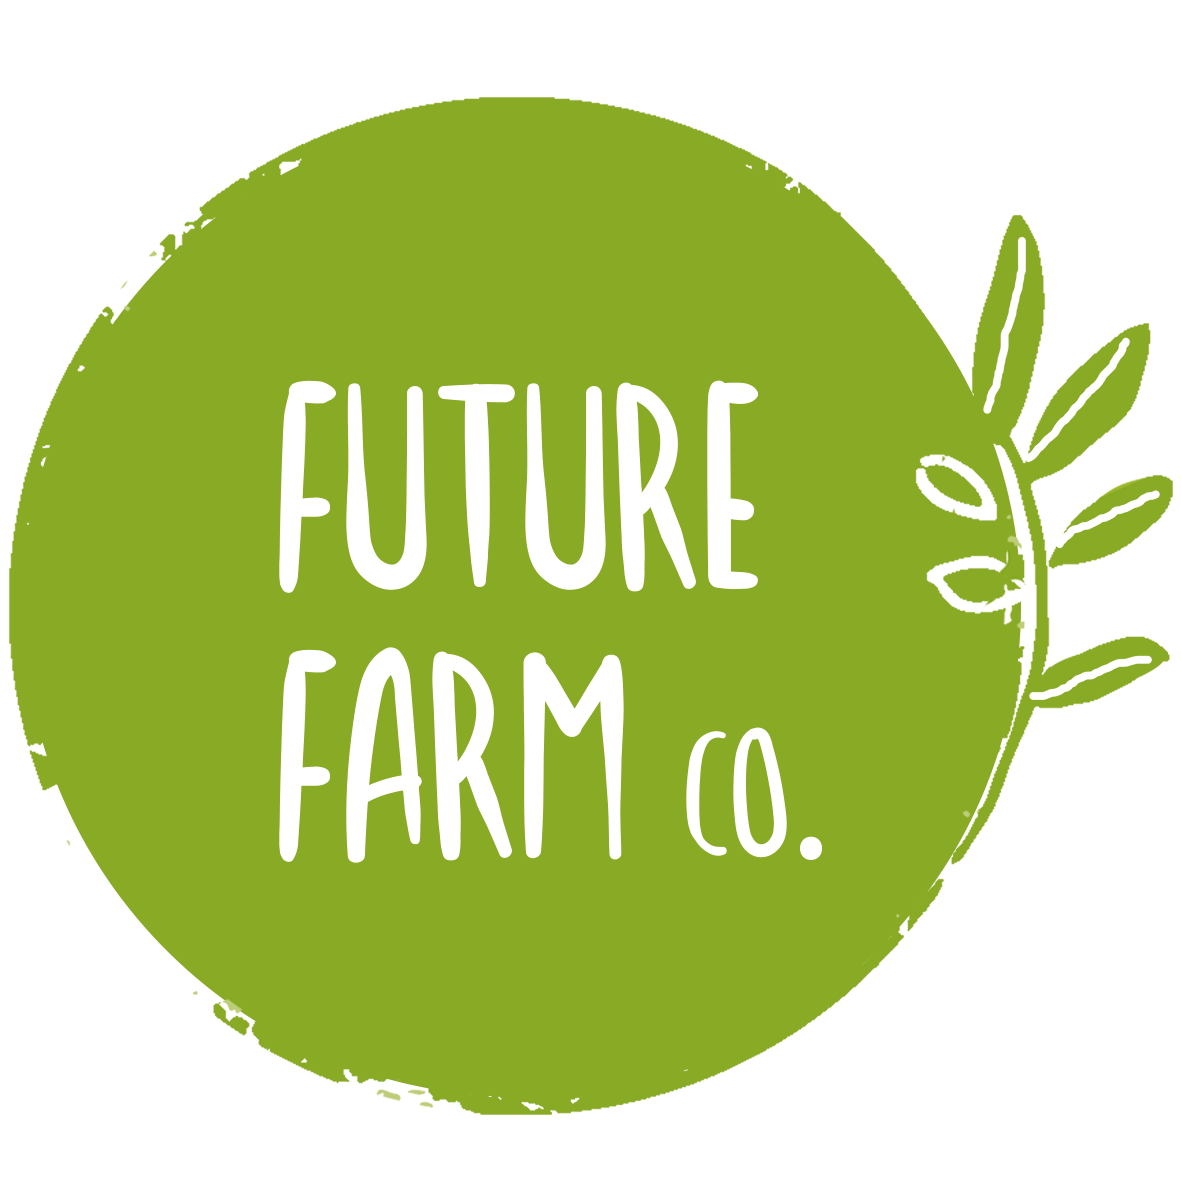 Future Farm Co.